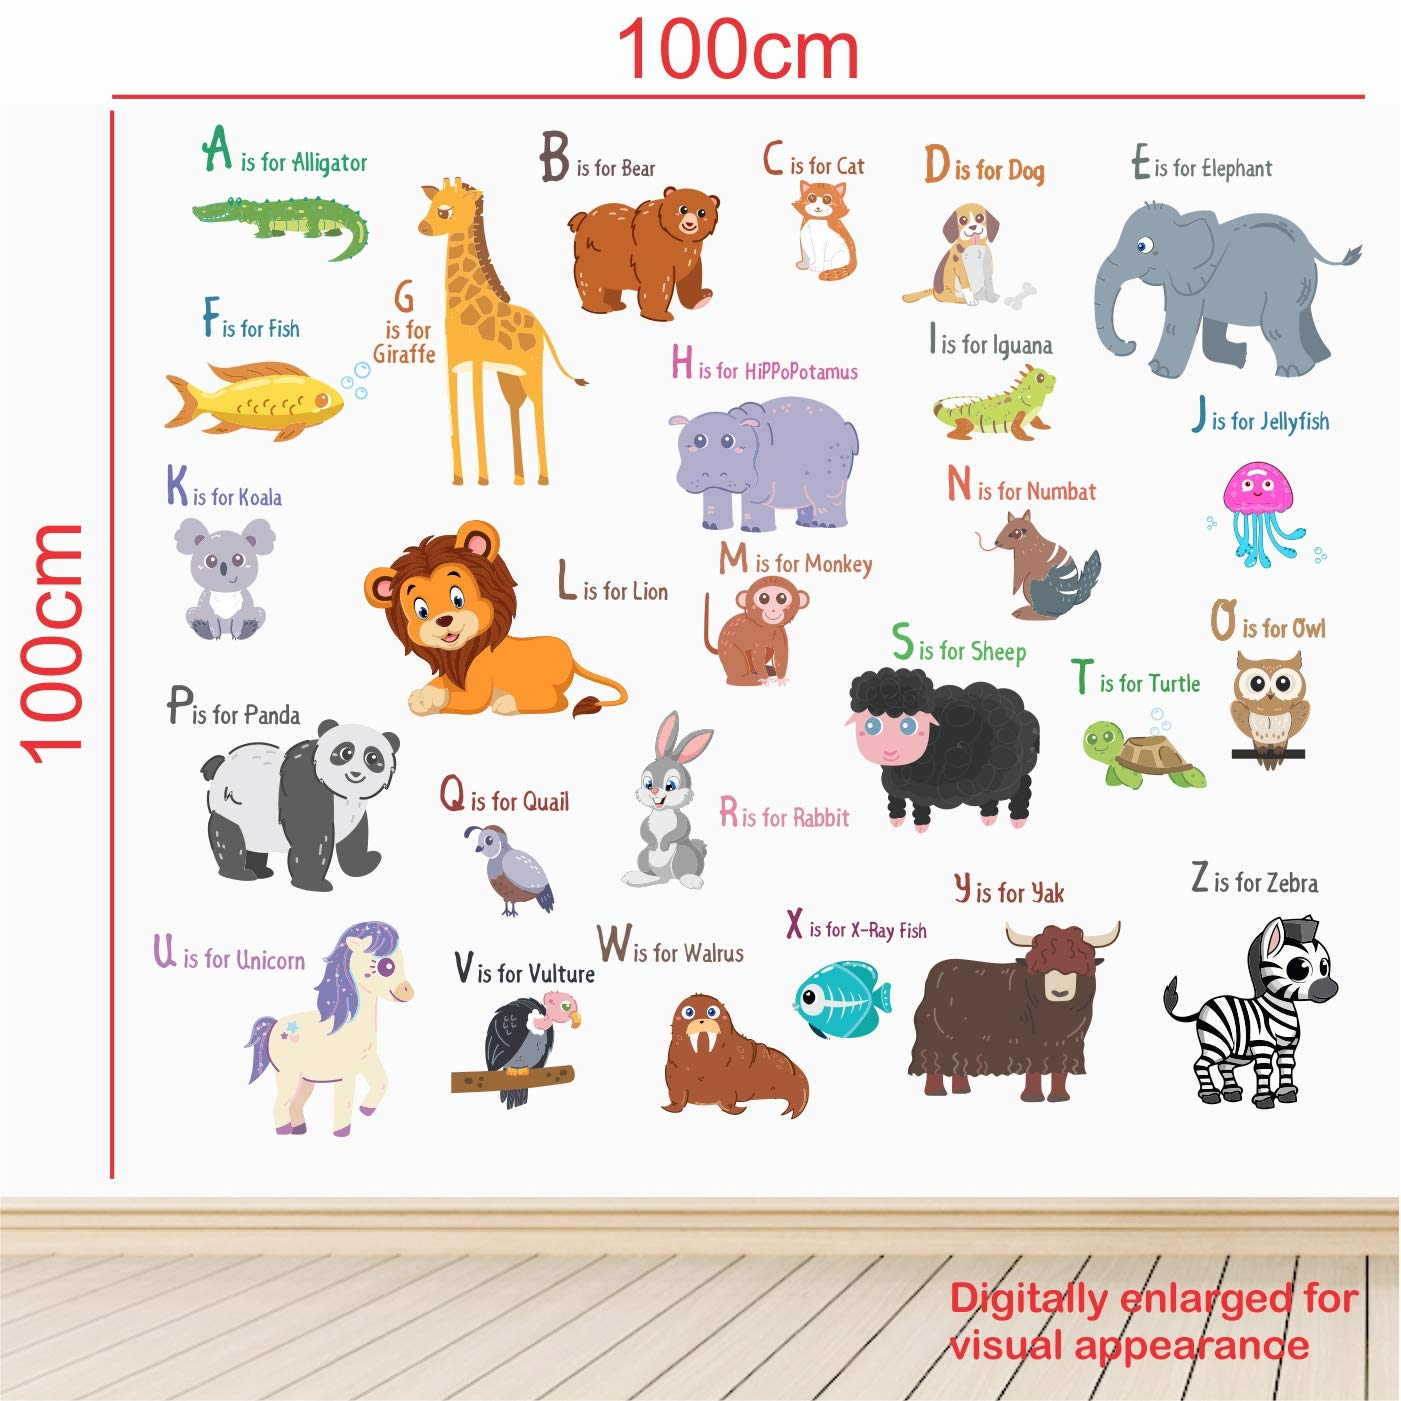 Buy Stickme Animal Alphabets Kids Learning Education Nursery Pre School Kinder Garden Wall Sticker For Baby Pvc Vinyl 100 X 100 Cm Multicolour Online At Low Prices In India Amazon In